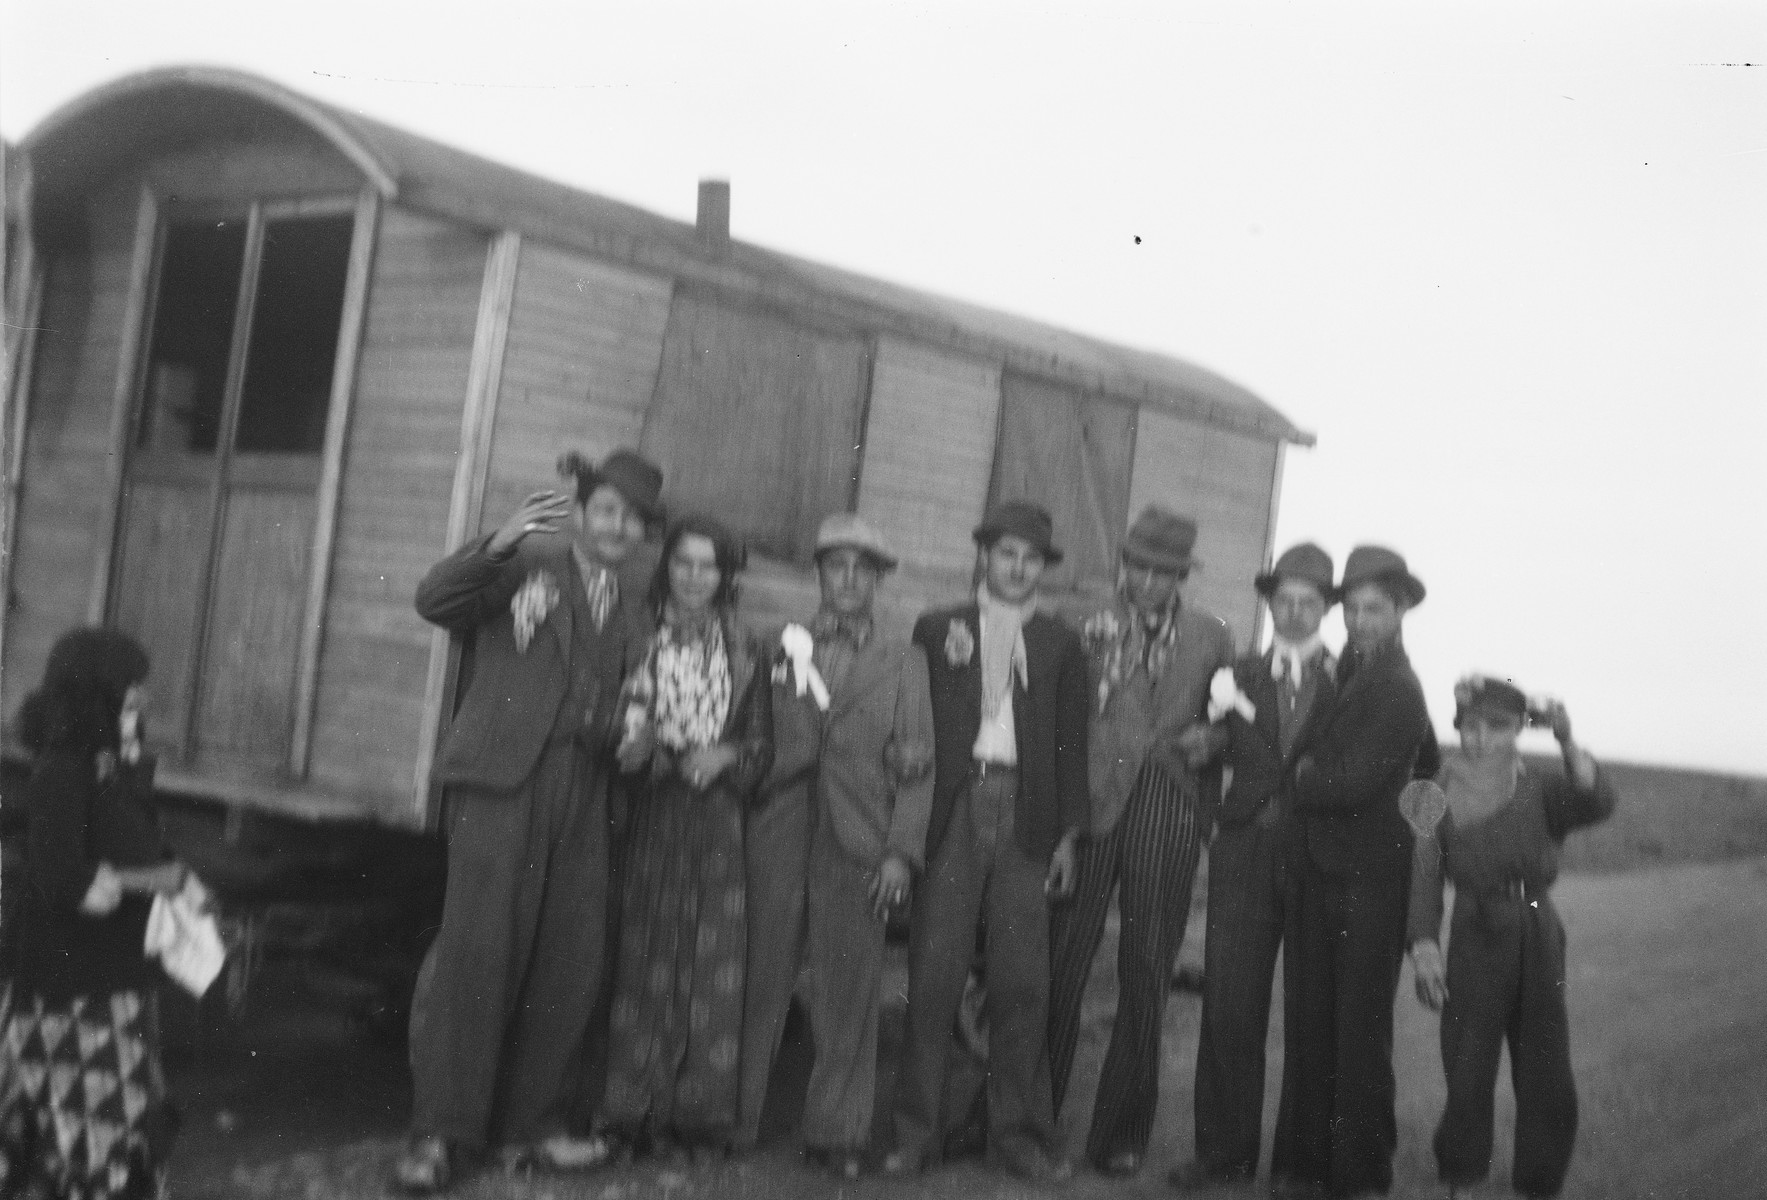 A group of Roma (Gypsies) poses alongside a caravan, possibly during a wedding.